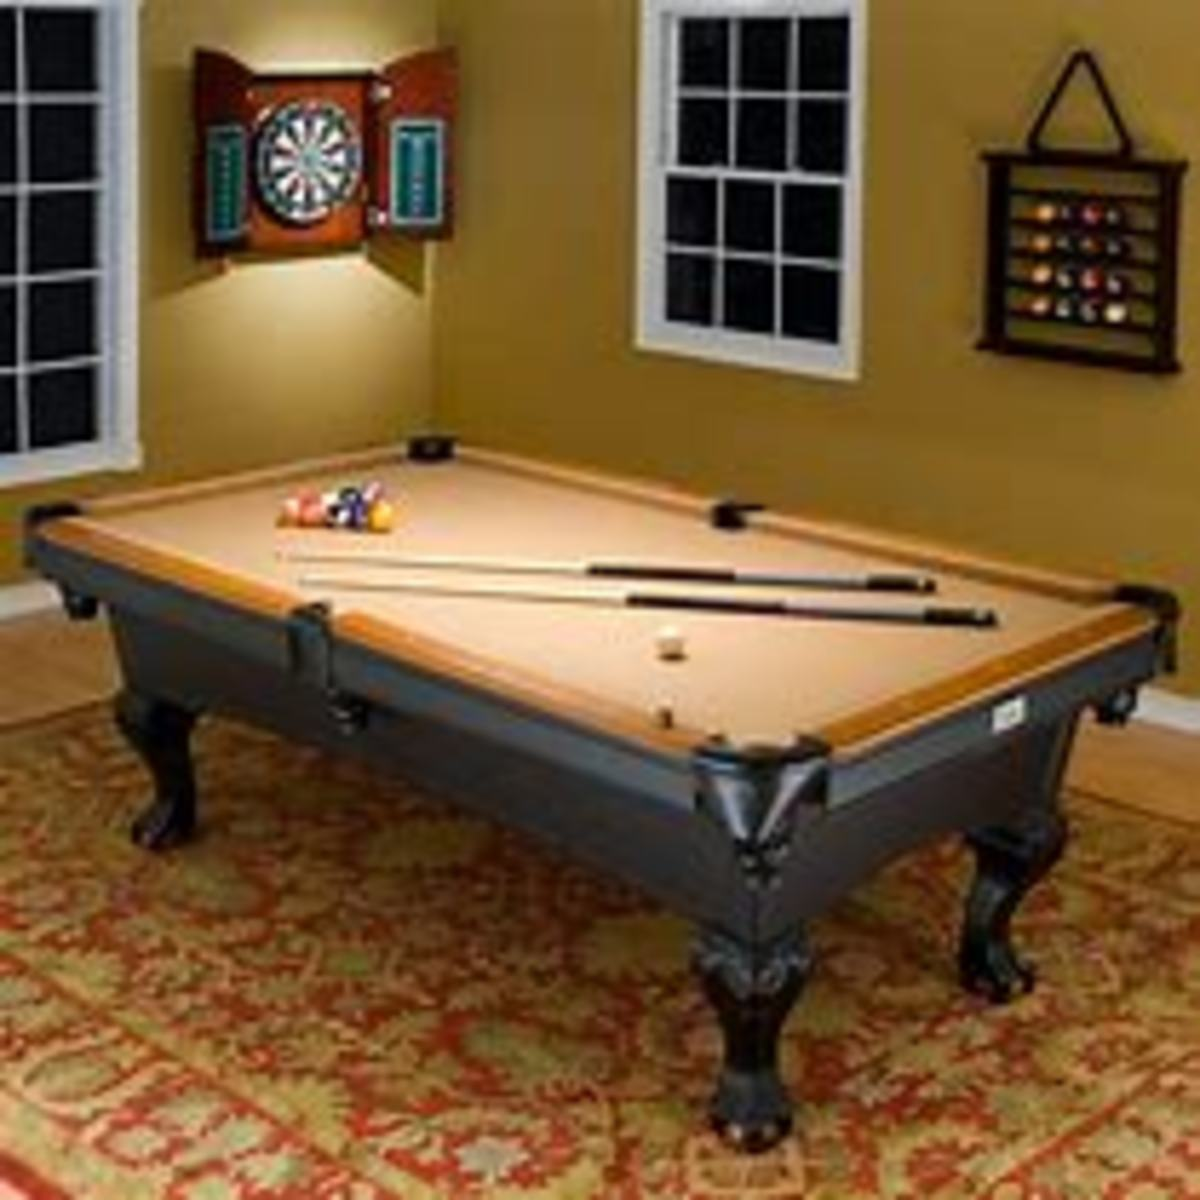 Does Your Man-Cave Have What It Takes to House a Pool Table?